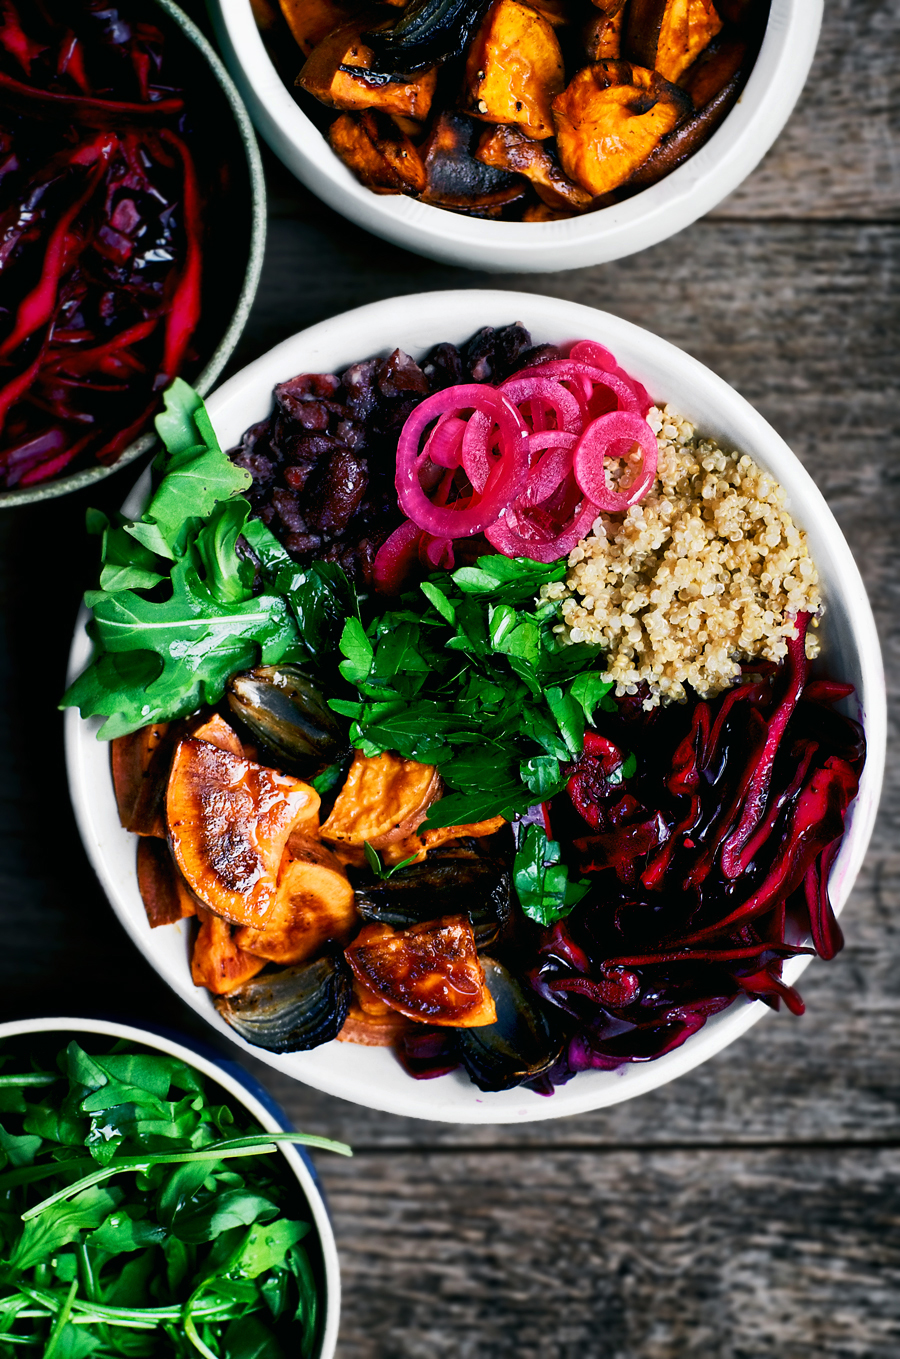 Vegan sweet potato bowls, inspired by Mexican flavours and using what's available in northern Europe in winter. Red cabbage, pickled onions, quinoa, and kidney beans are featured here with greens and plenty of spices for an easy, colourful meal.